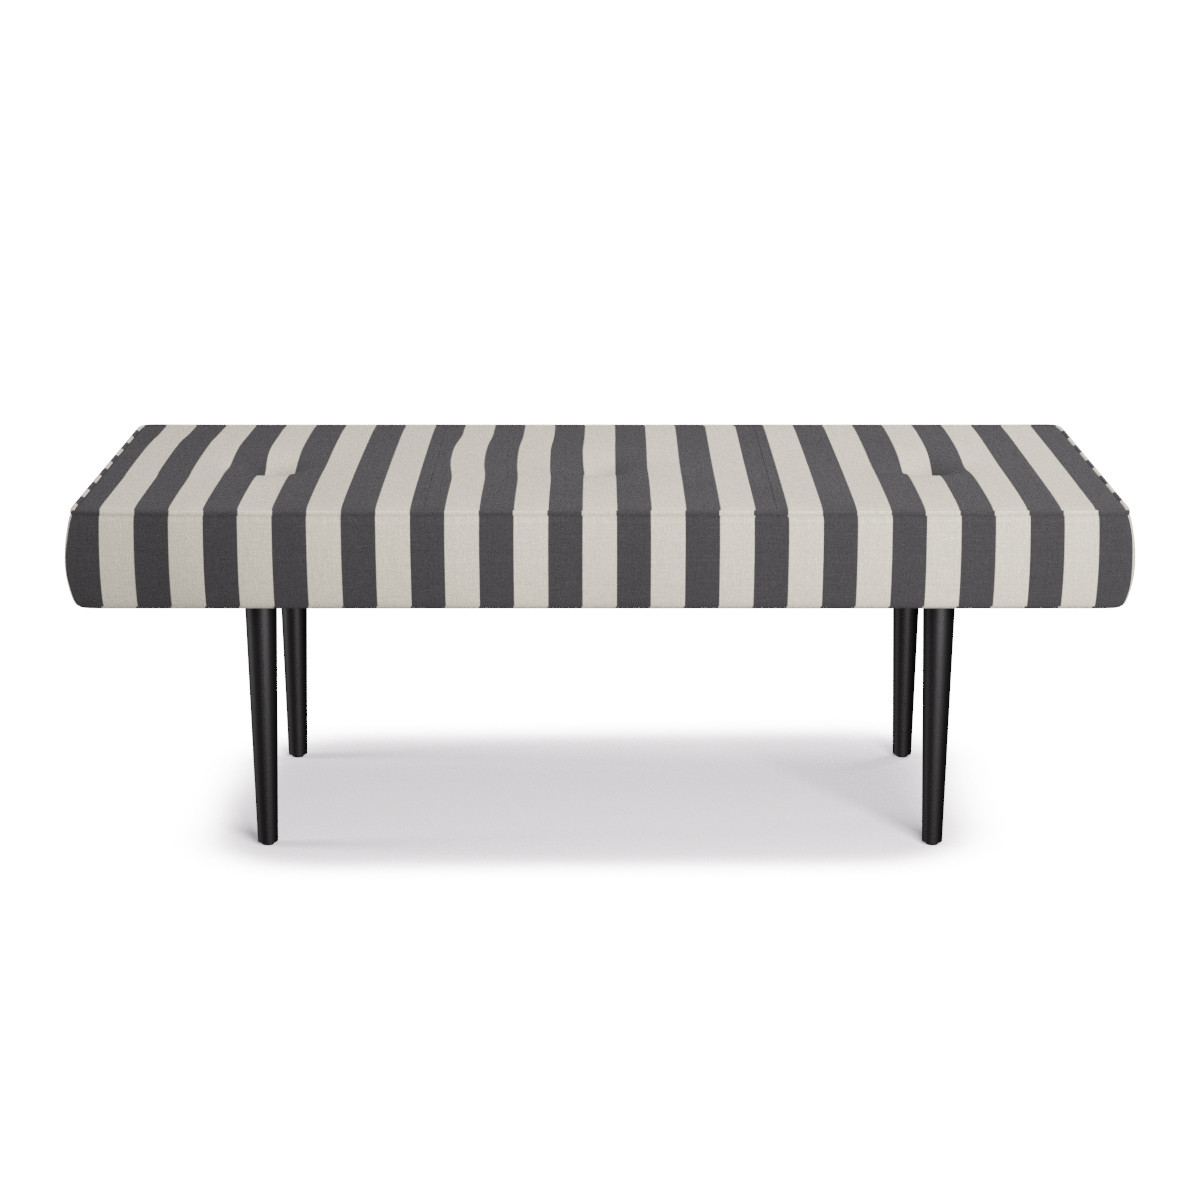 Fantastic Mid Century Bench Charcoal Cabana Stripe Beatyapartments Chair Design Images Beatyapartmentscom